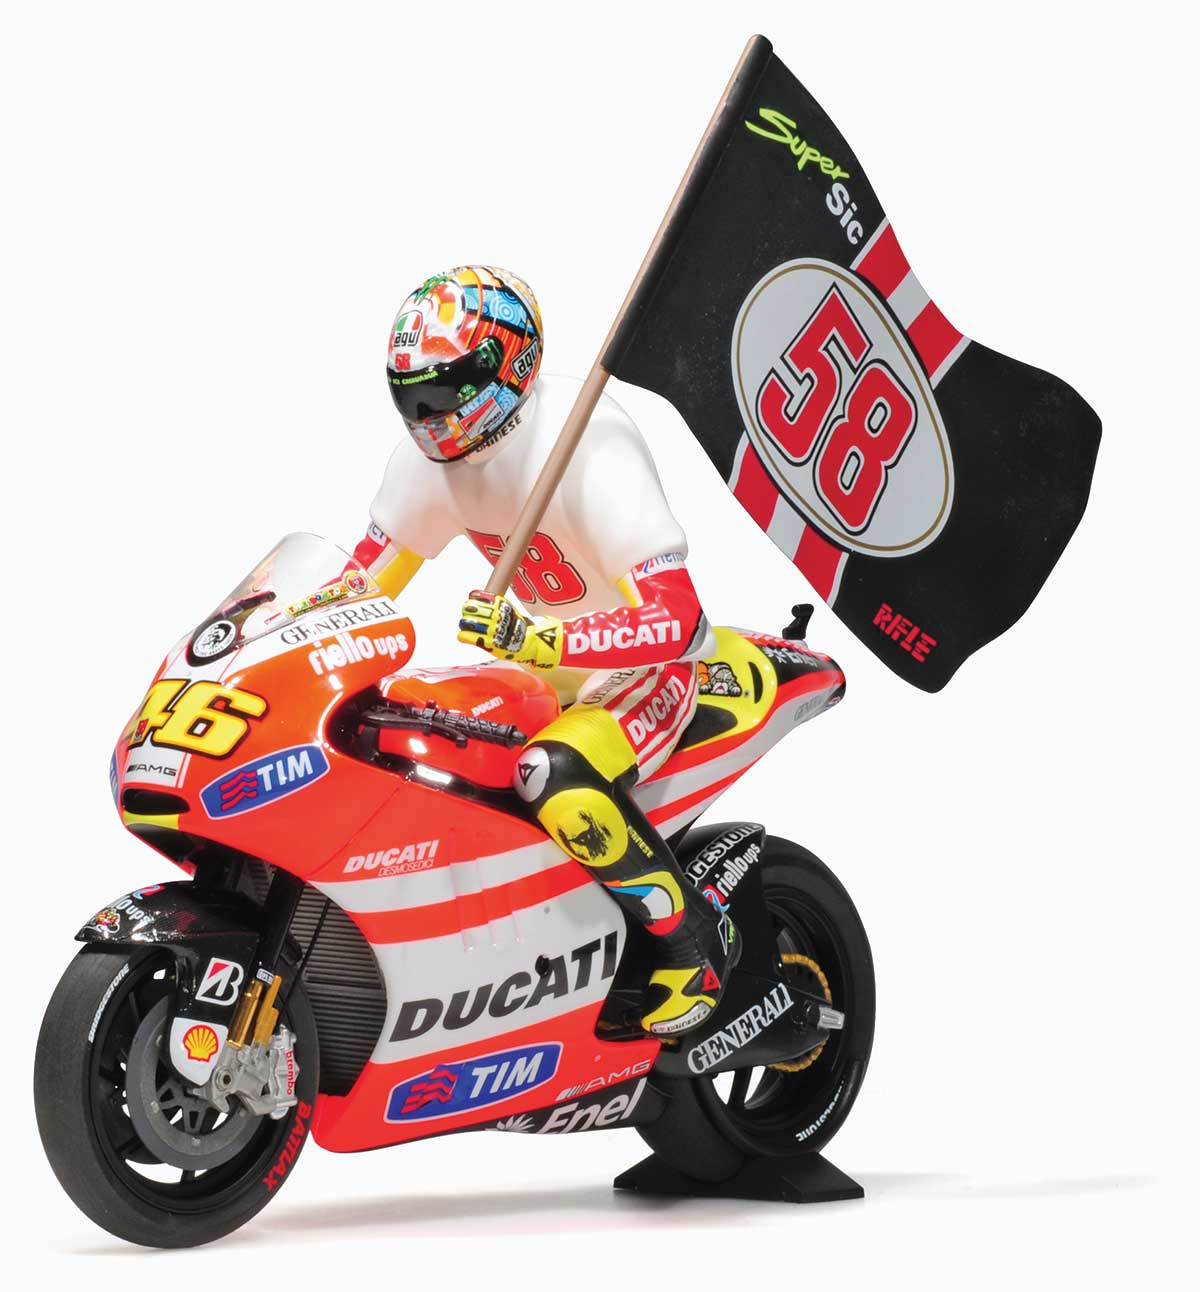 1:12 Rossi 2011 Ducati Desmosedici GP11.2 model with Figure and Flag from Minichamps